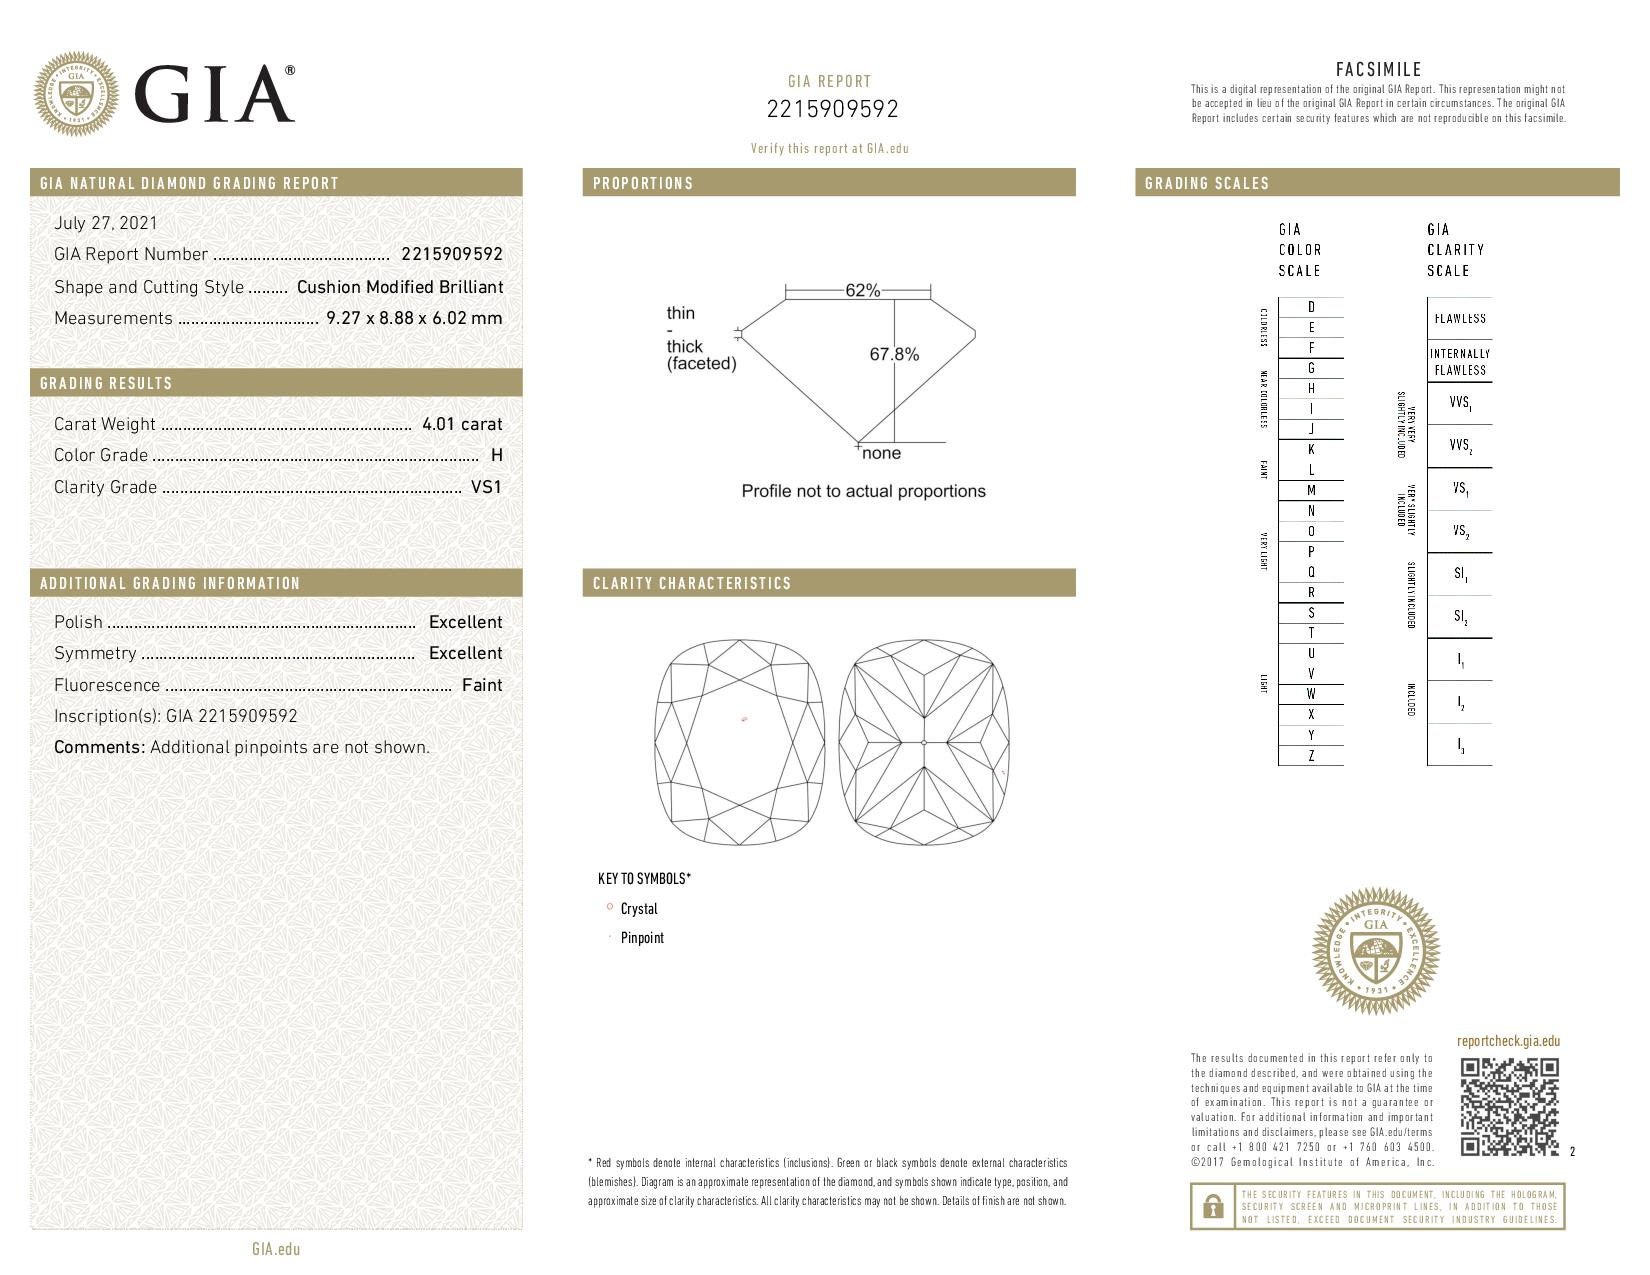 This is a 4.01 carat cushion shape, H color, VS1 clarity natural diamond accompanied by a GIA grading report.